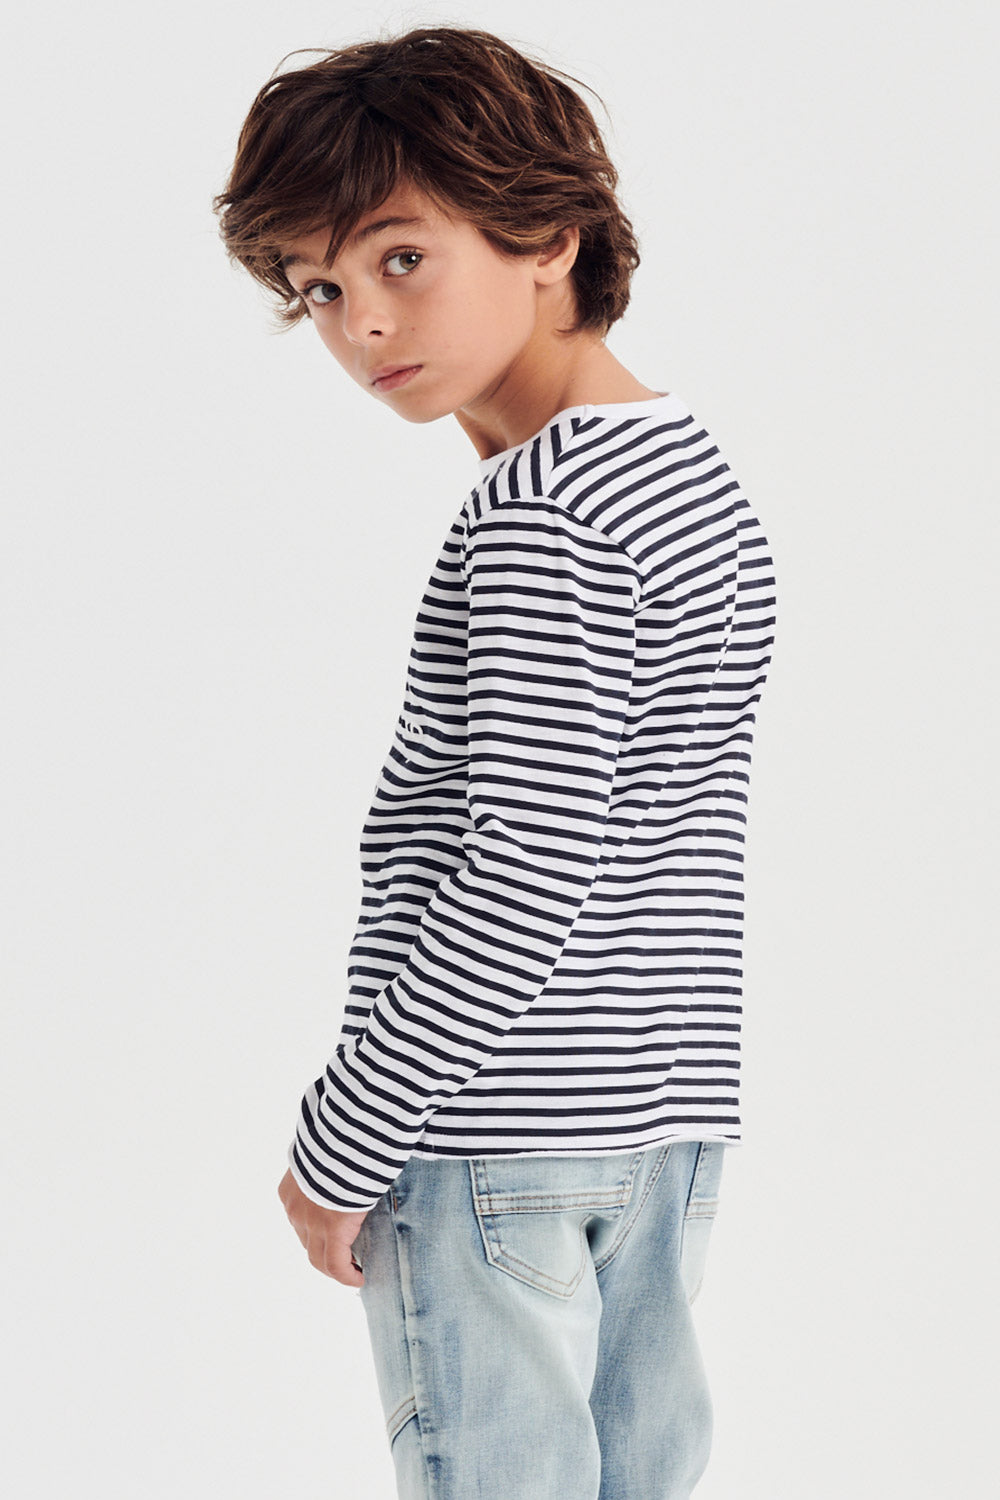 true stripe t.shirt - mood indigo stripe